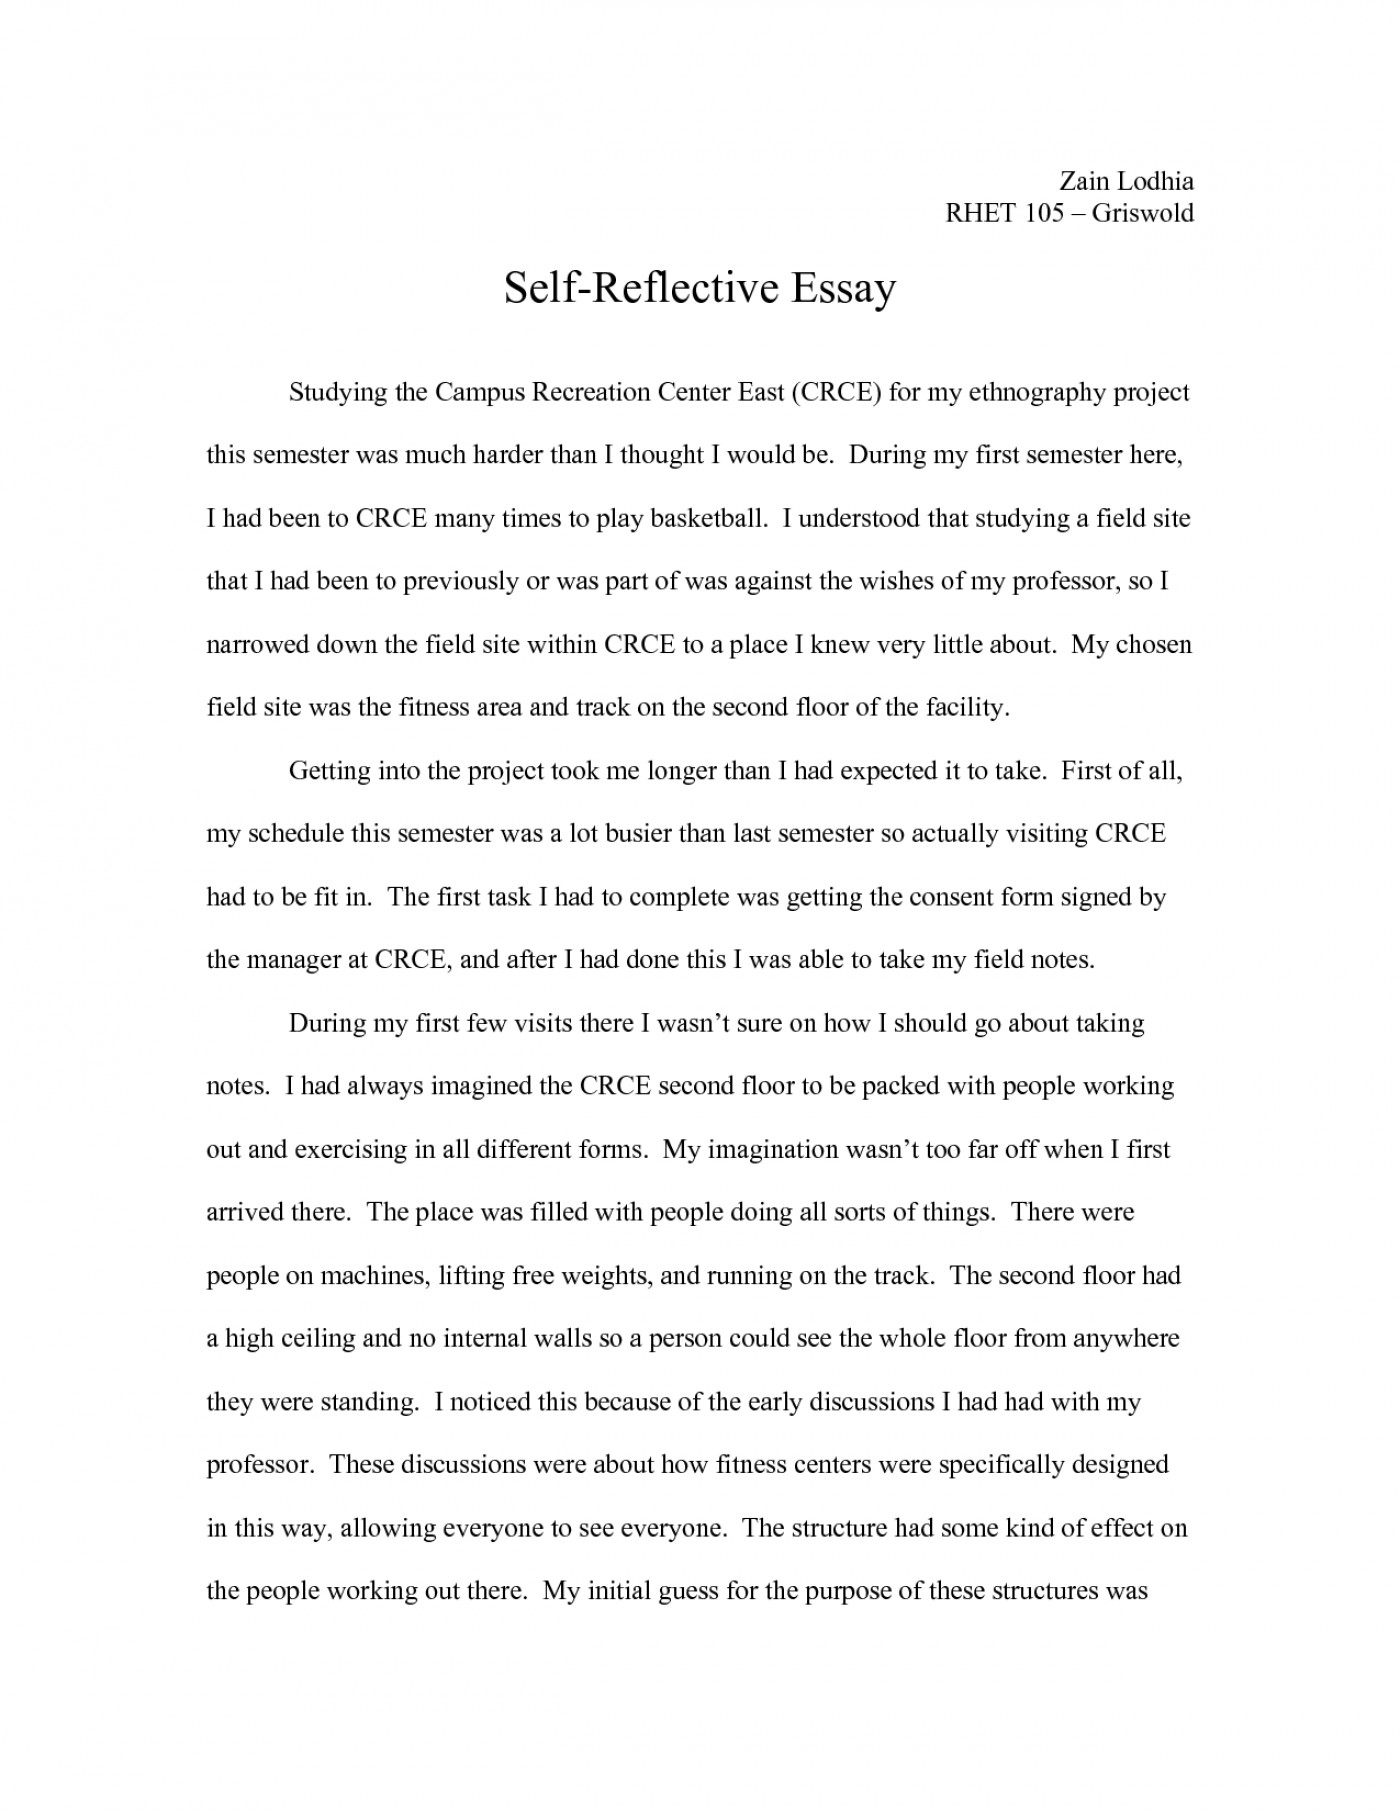 003 Qal0pwnf46 Reflective Essays Beautiful Essay Examples About Life Pdf Apa 1400